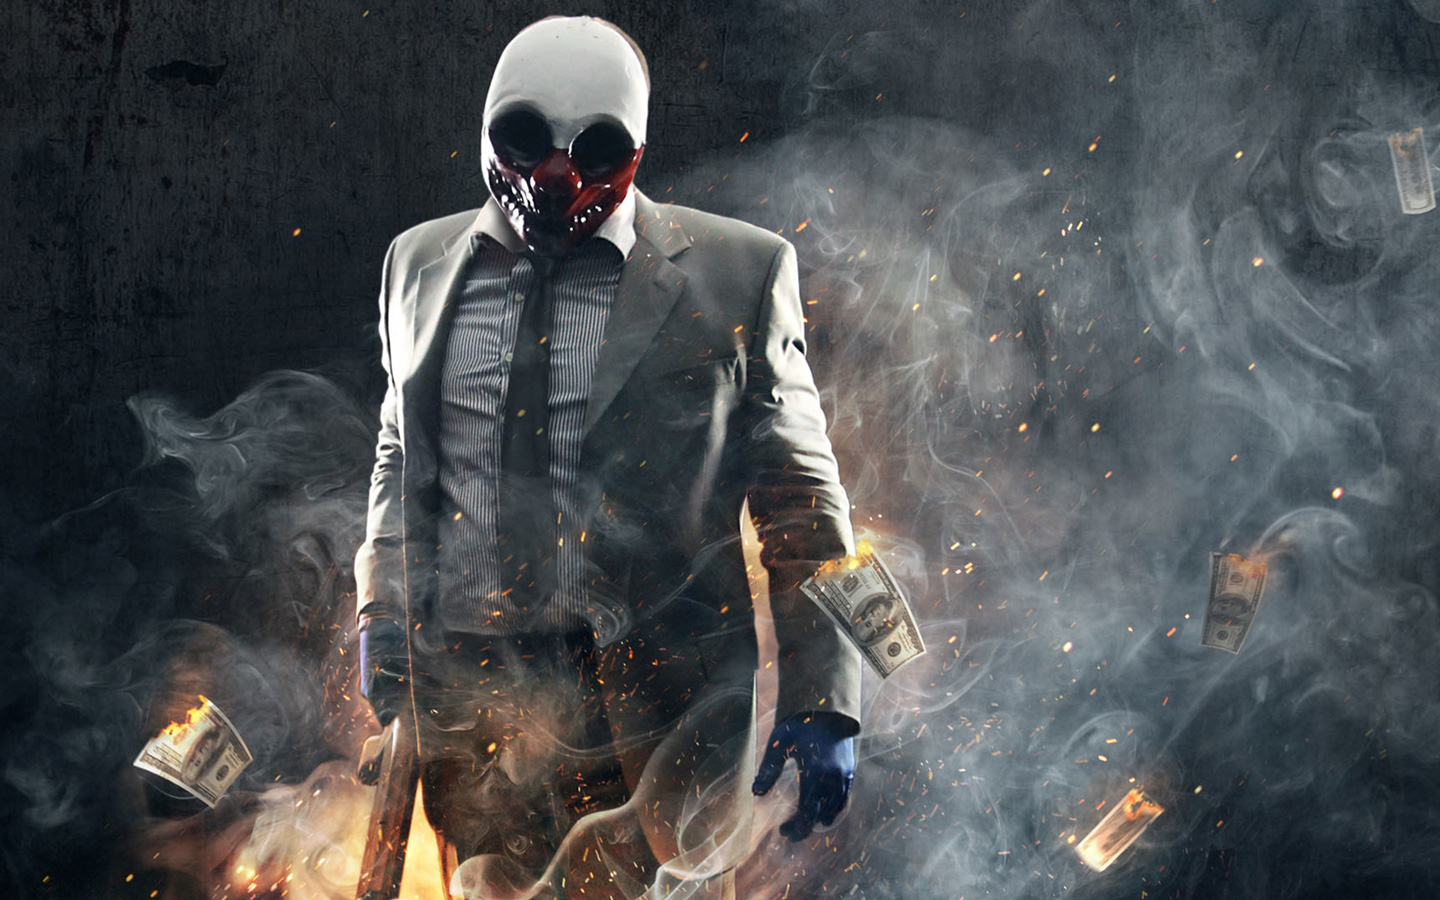 Payday 2 Wallpaper in 1440x900